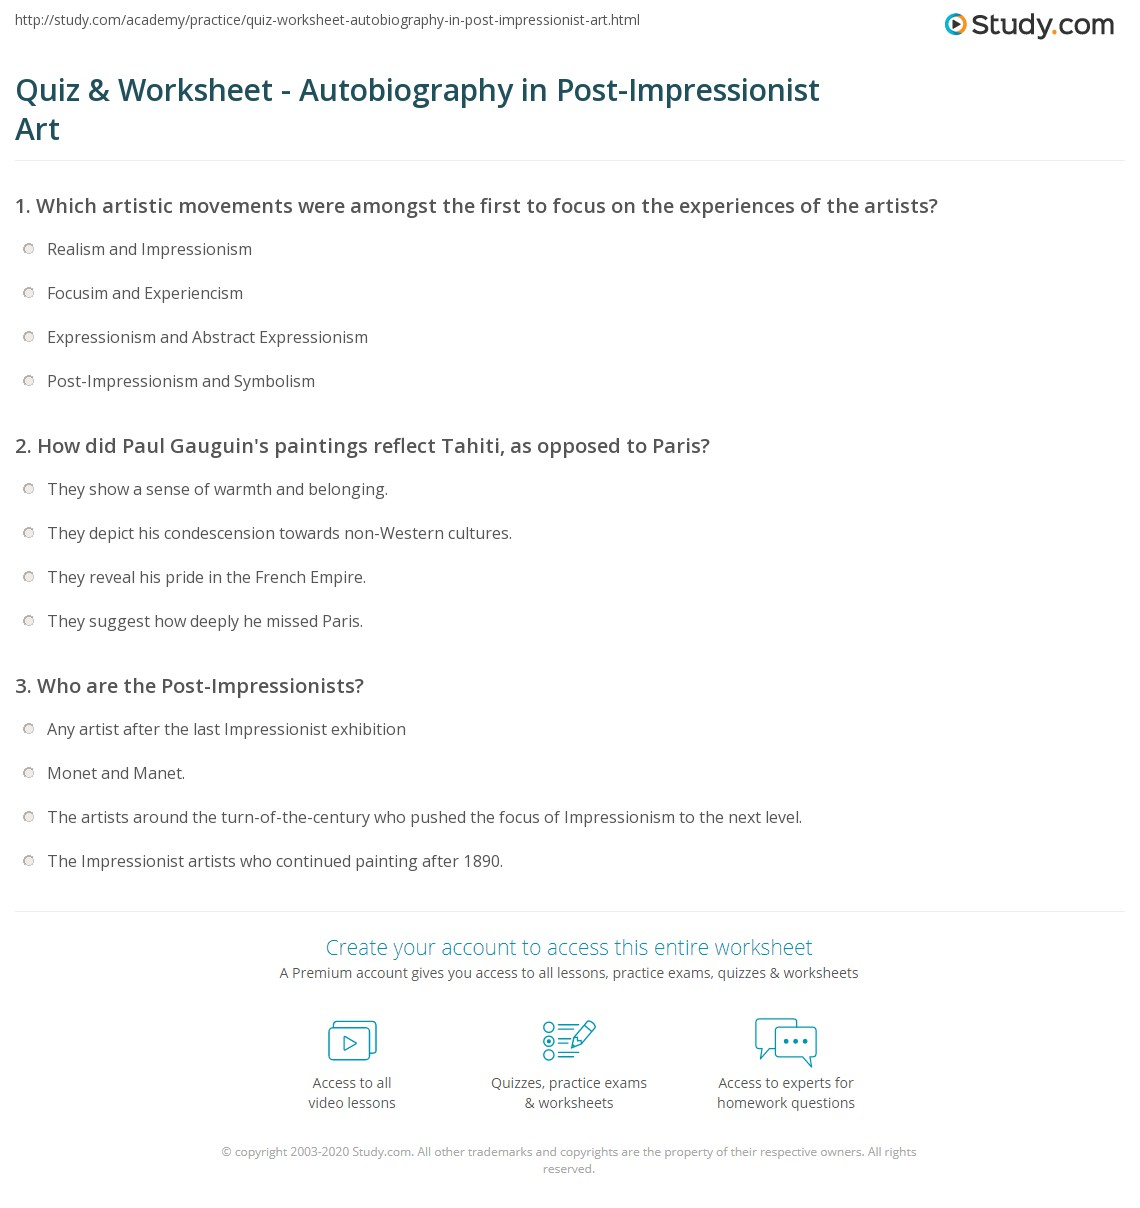 Free Worksheet Autobiography Worksheets quiz worksheet autobiography in post impressionist art study com print autobiographical elements of worksheet